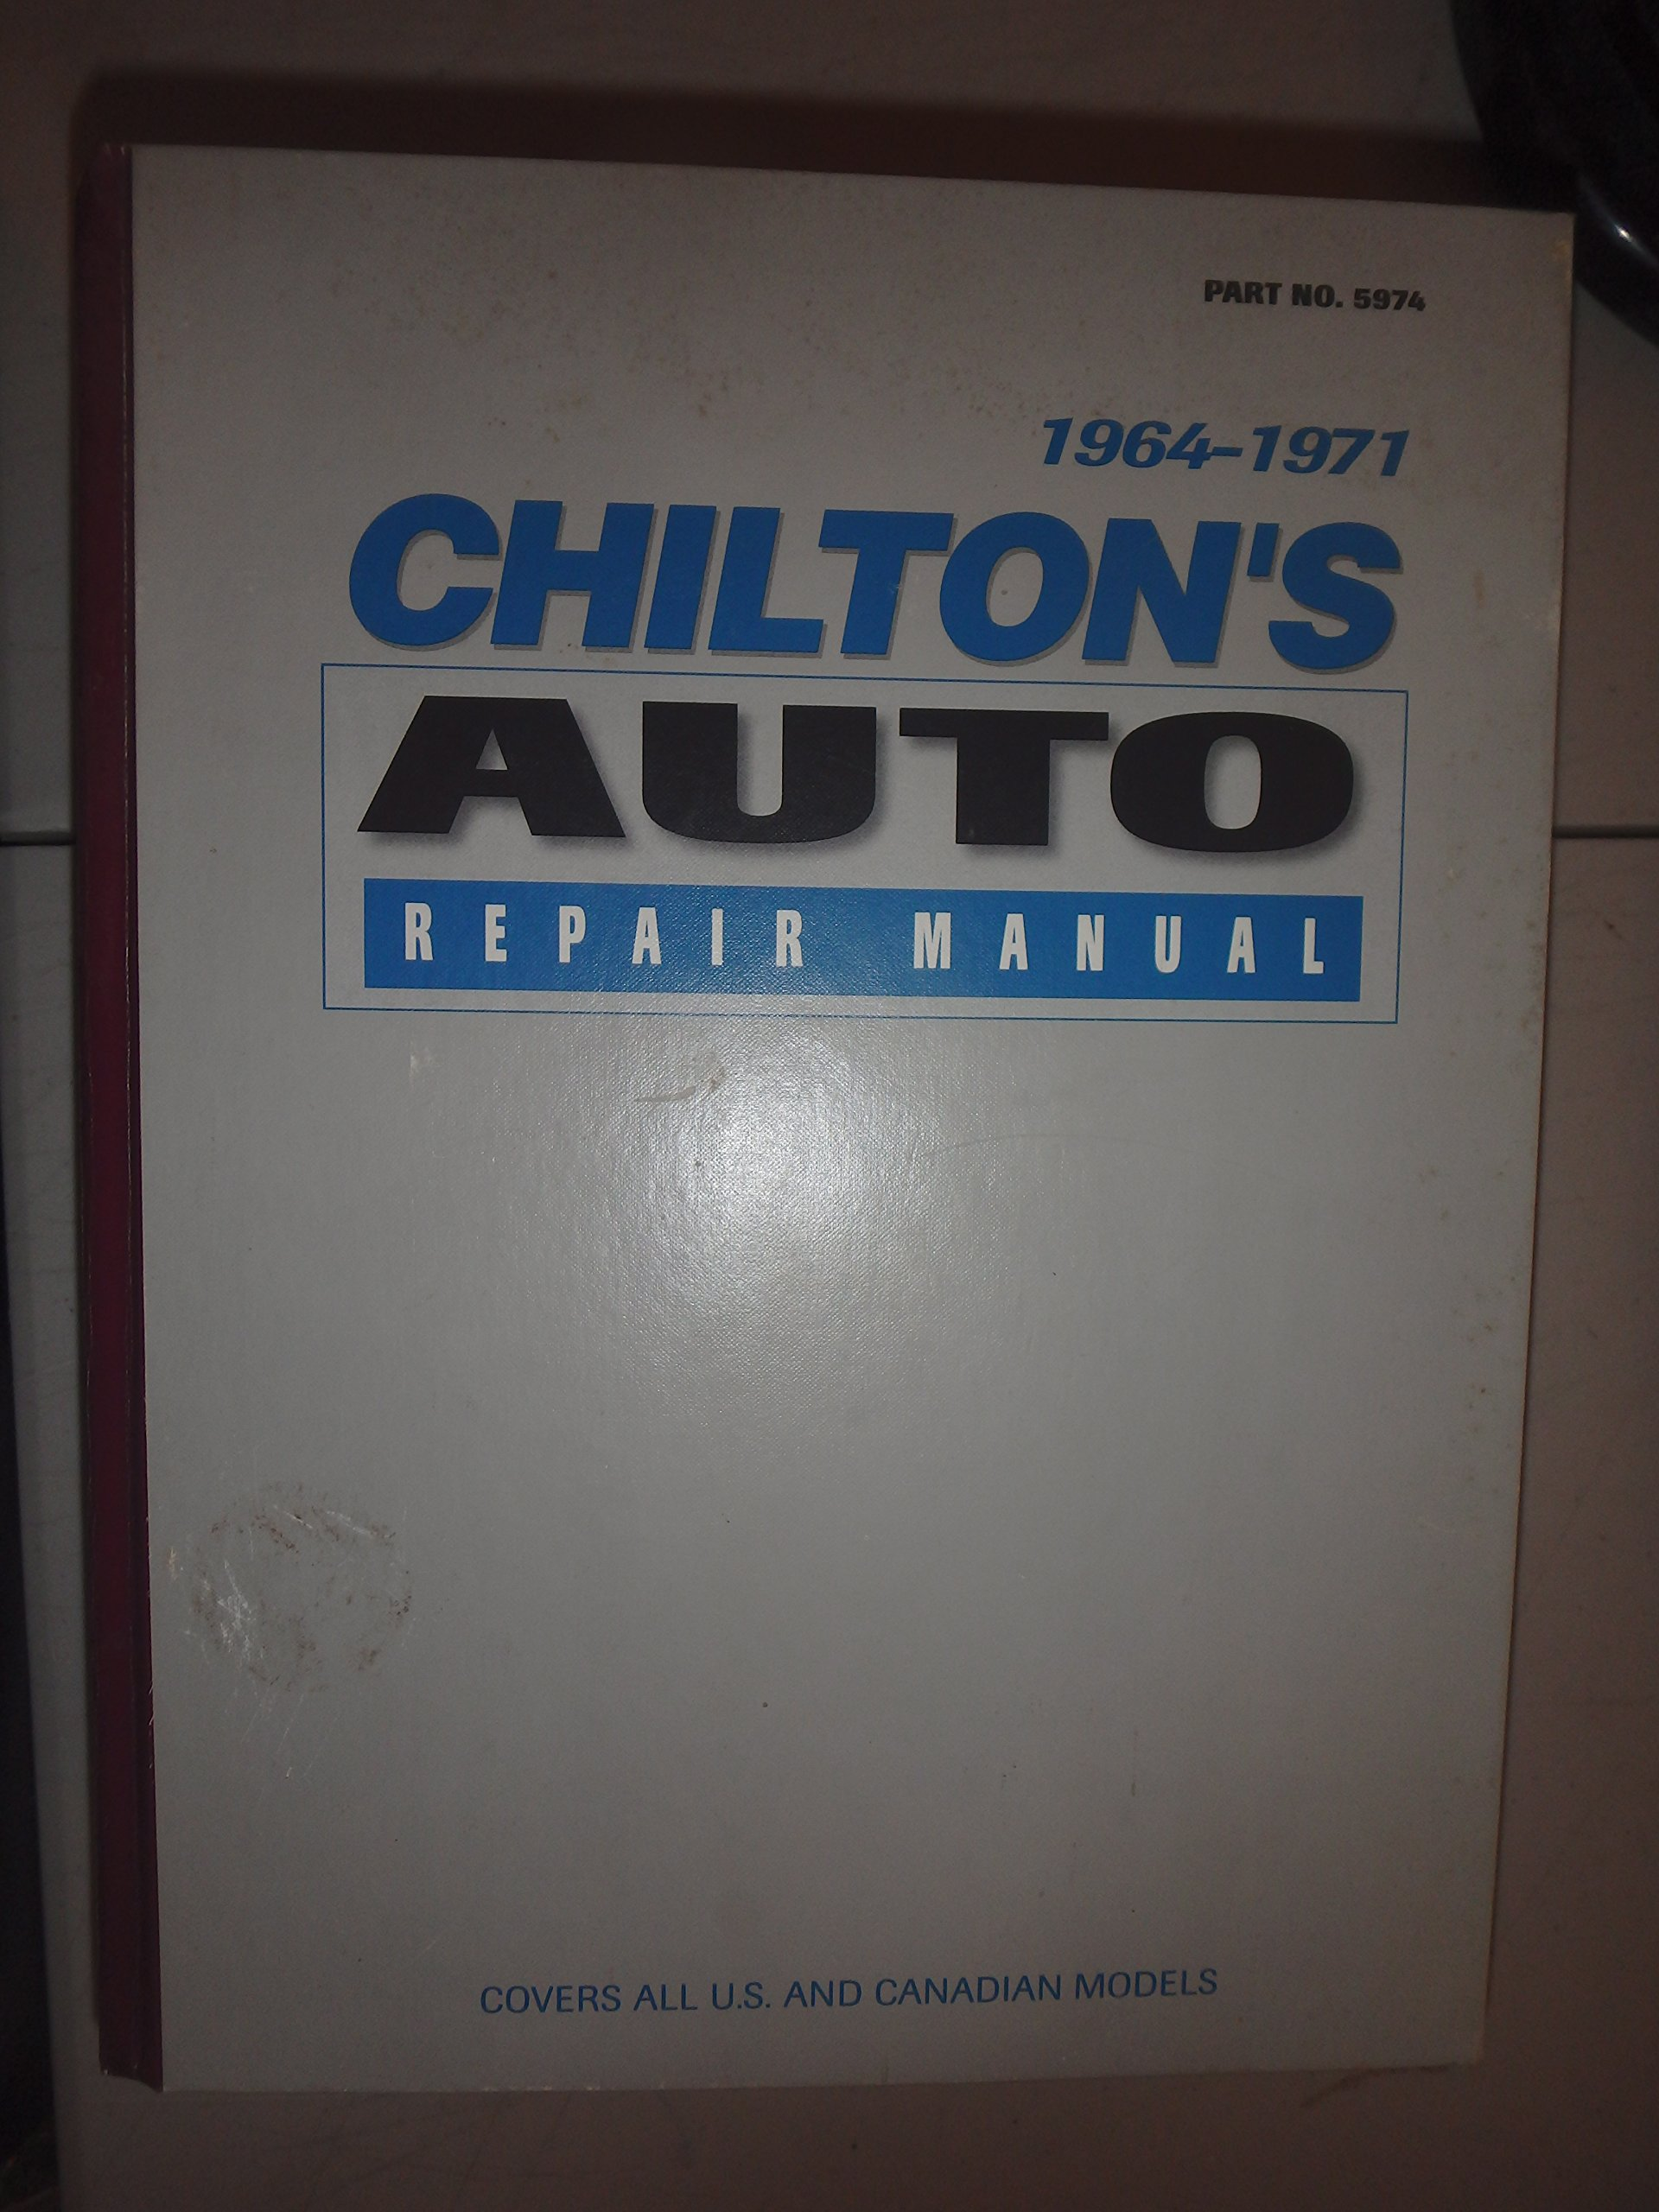 1973 dodge dart ebook best deal gallery free ebooks and more chiltons auto repair manual 1964 1971 collectors edition 5974 chiltons auto repair manual 1964 1971 collectors fandeluxe Choice Image